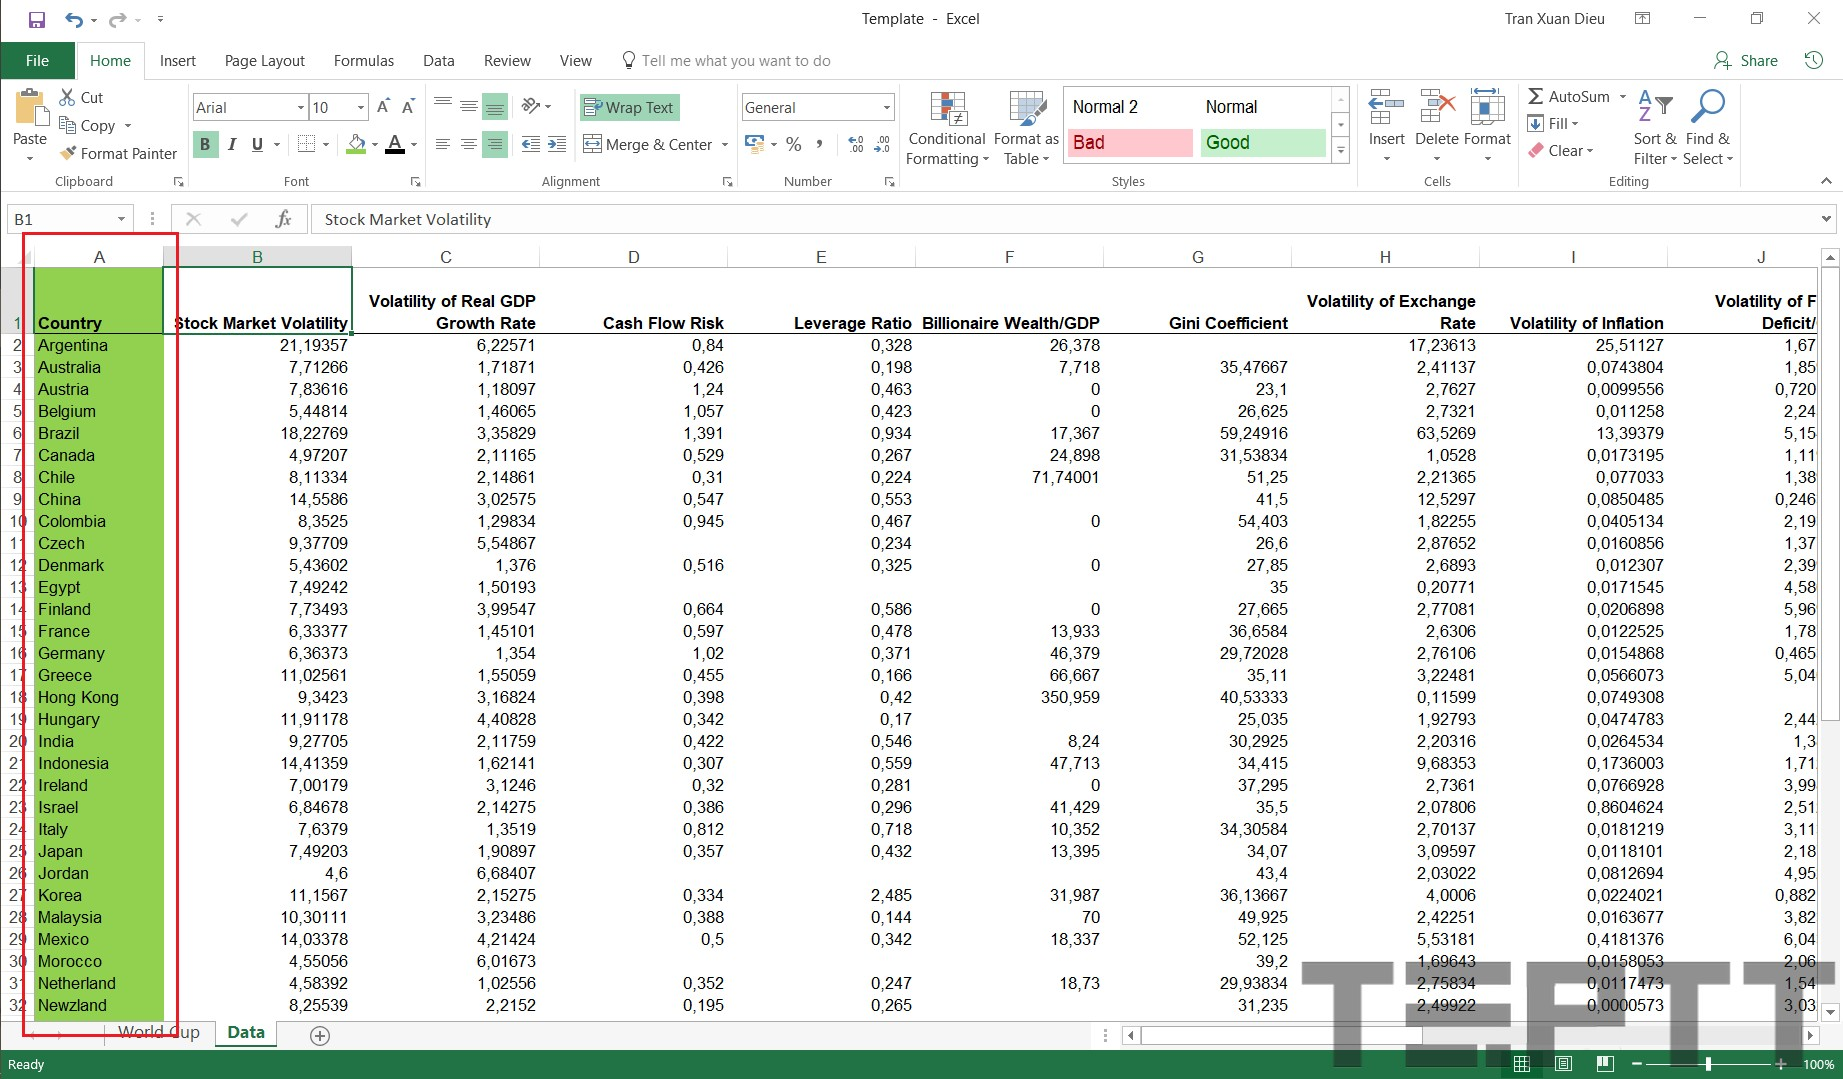 co dinh dong trong excel